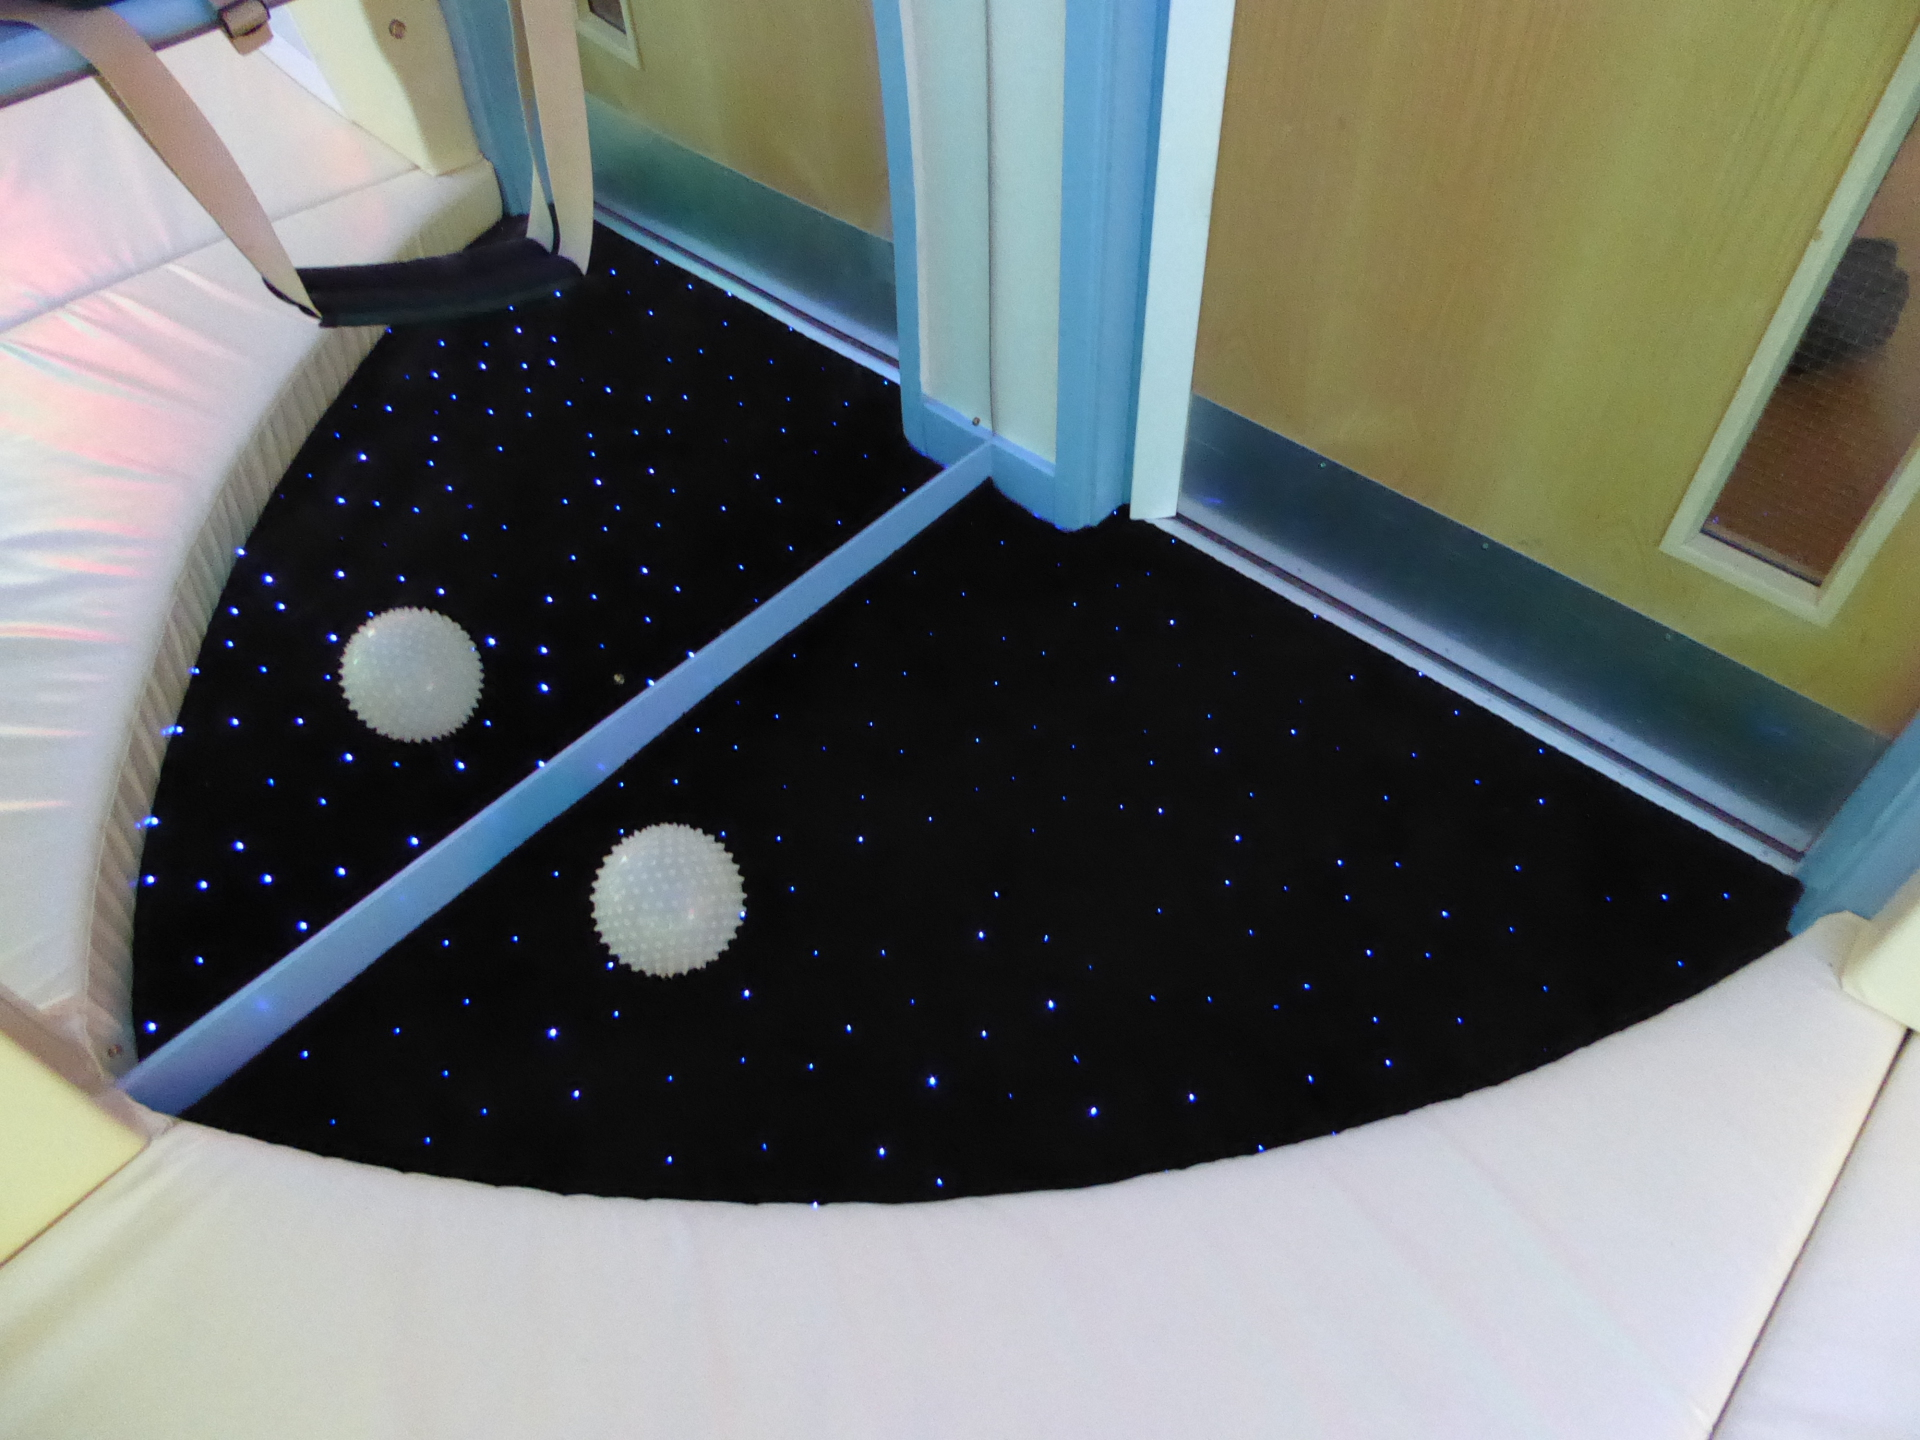 LED Star Carpet and Mirror